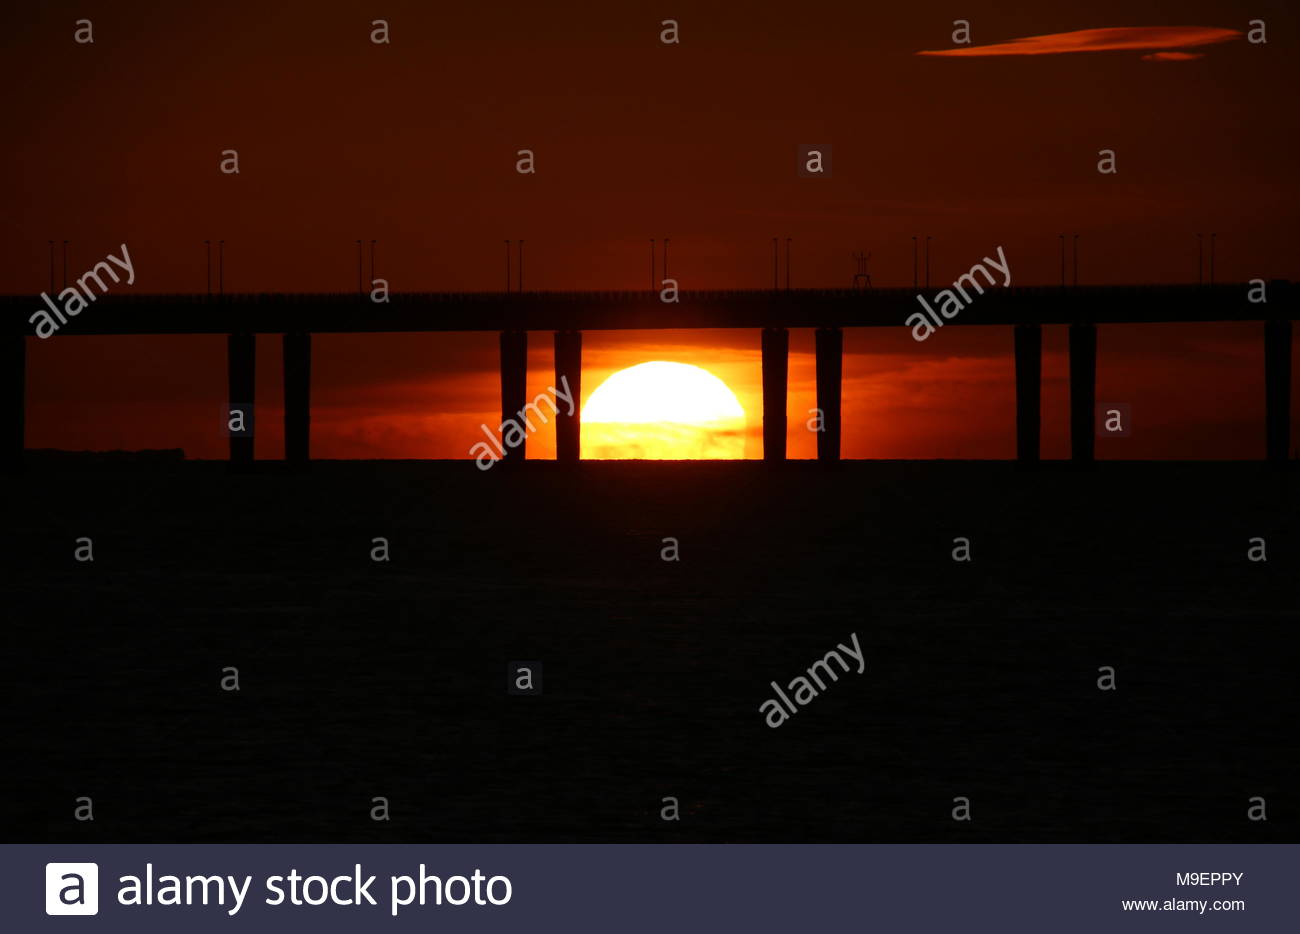 Dundee, UK. 25th March 2018. A glorious start to the first day of British Summer Time. Sunrise at the Tay Road Bridge Dundee Uk.  © Stephen Finn/Alamy Live News - Stock Image